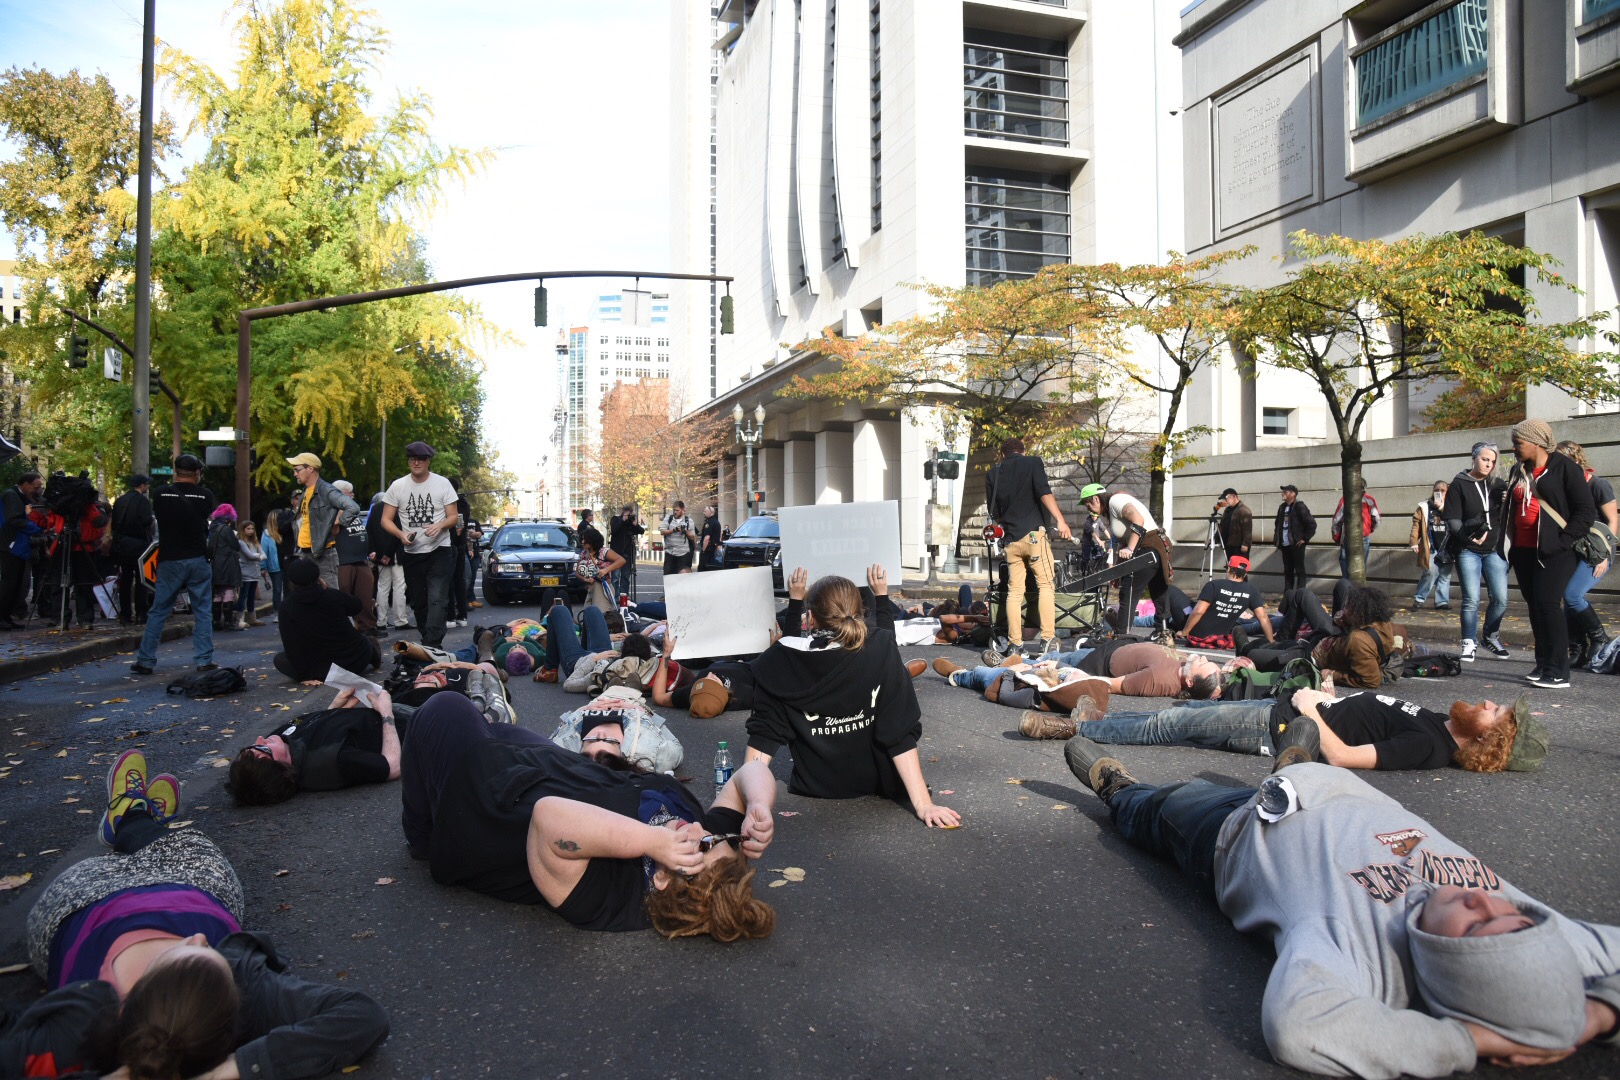 """Black Lives Matter protesters stage a """"die-in"""" on Southwest 3rd Avenue on Oct. 29, 2016. (Joe Riedl)"""